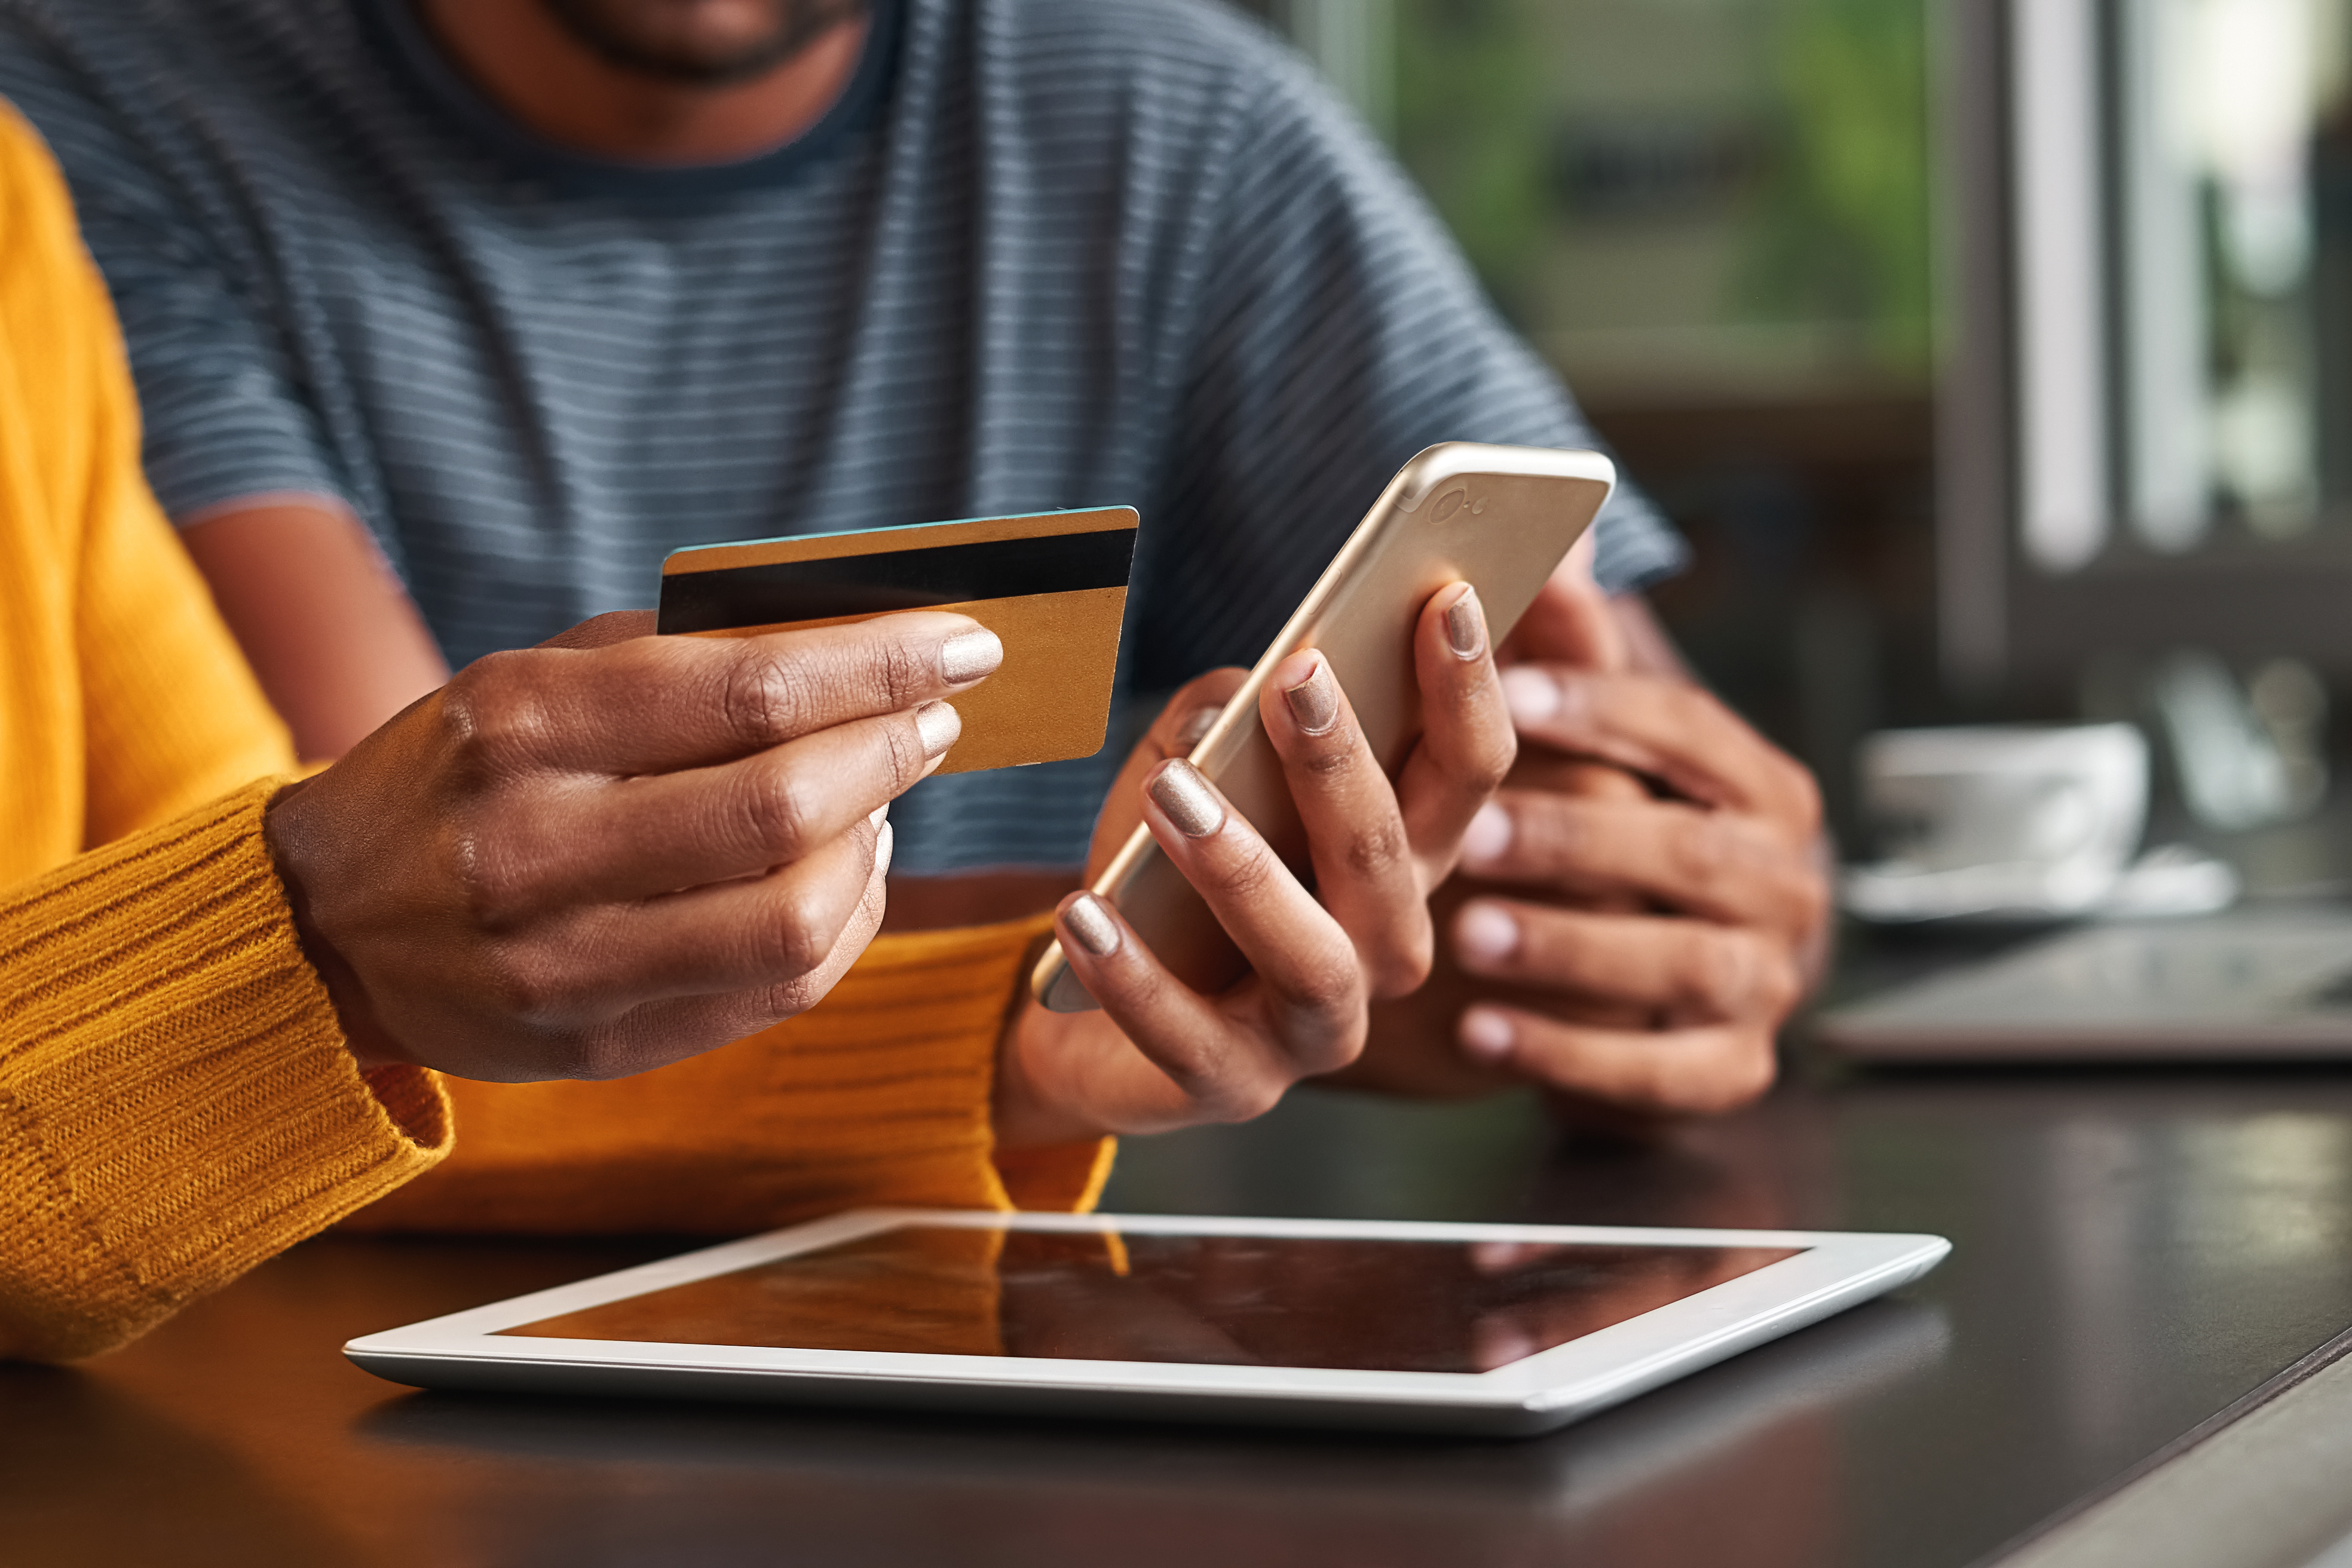 Best credit cards for non-U.S. citizens